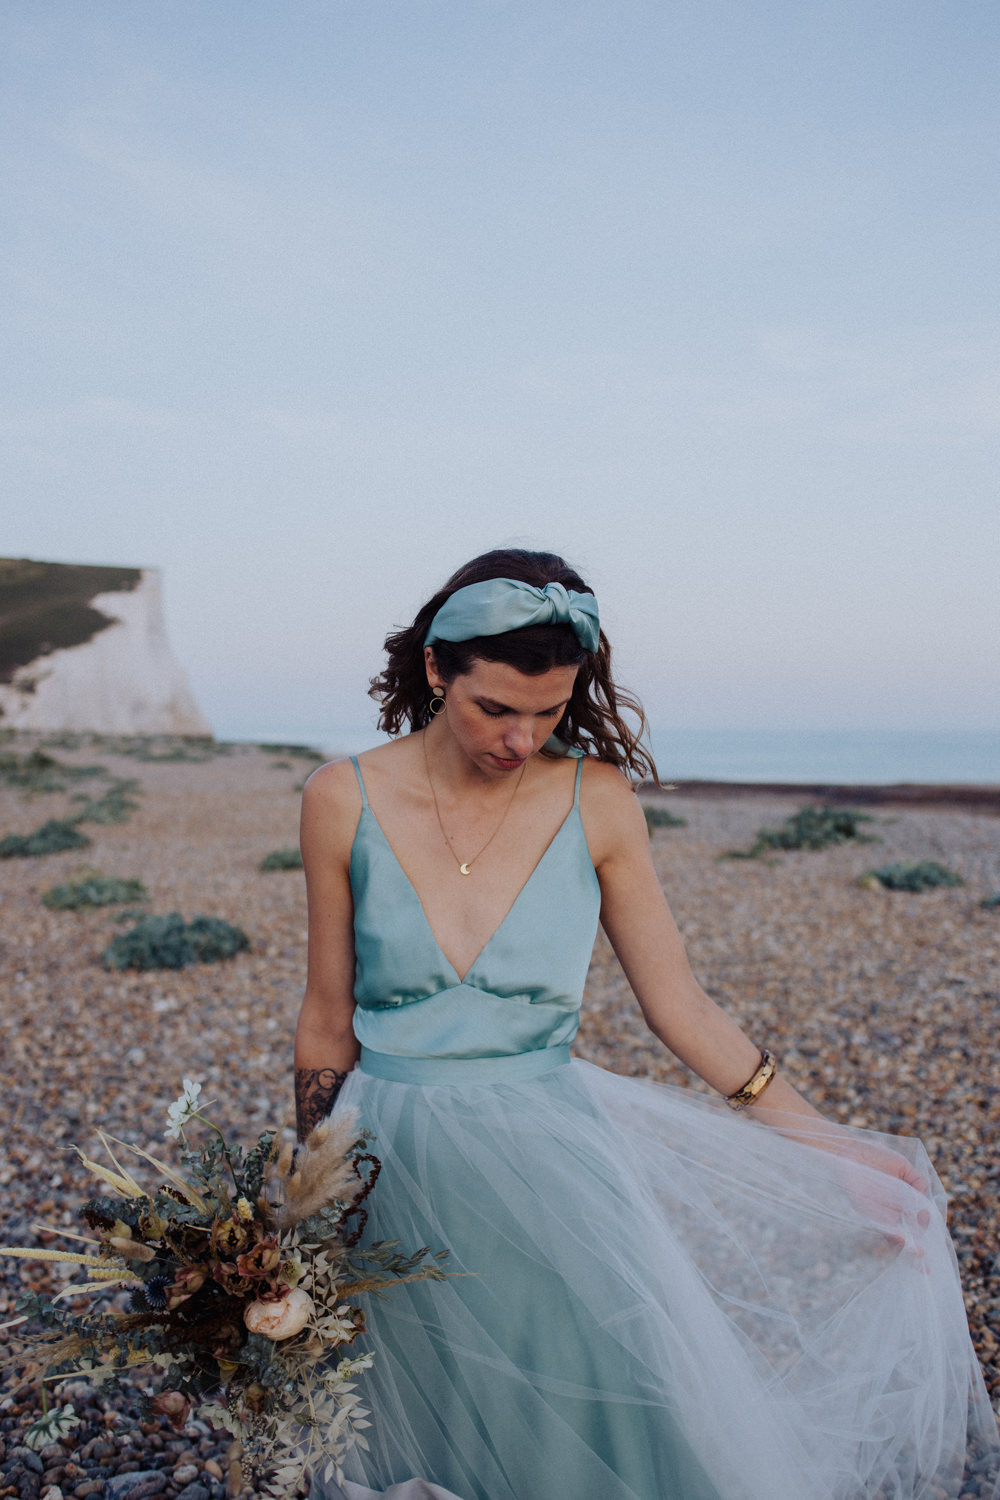 Dress Gown Bride Bridal Tulle Blue Coastal Elopement Manon Pauffin Photography